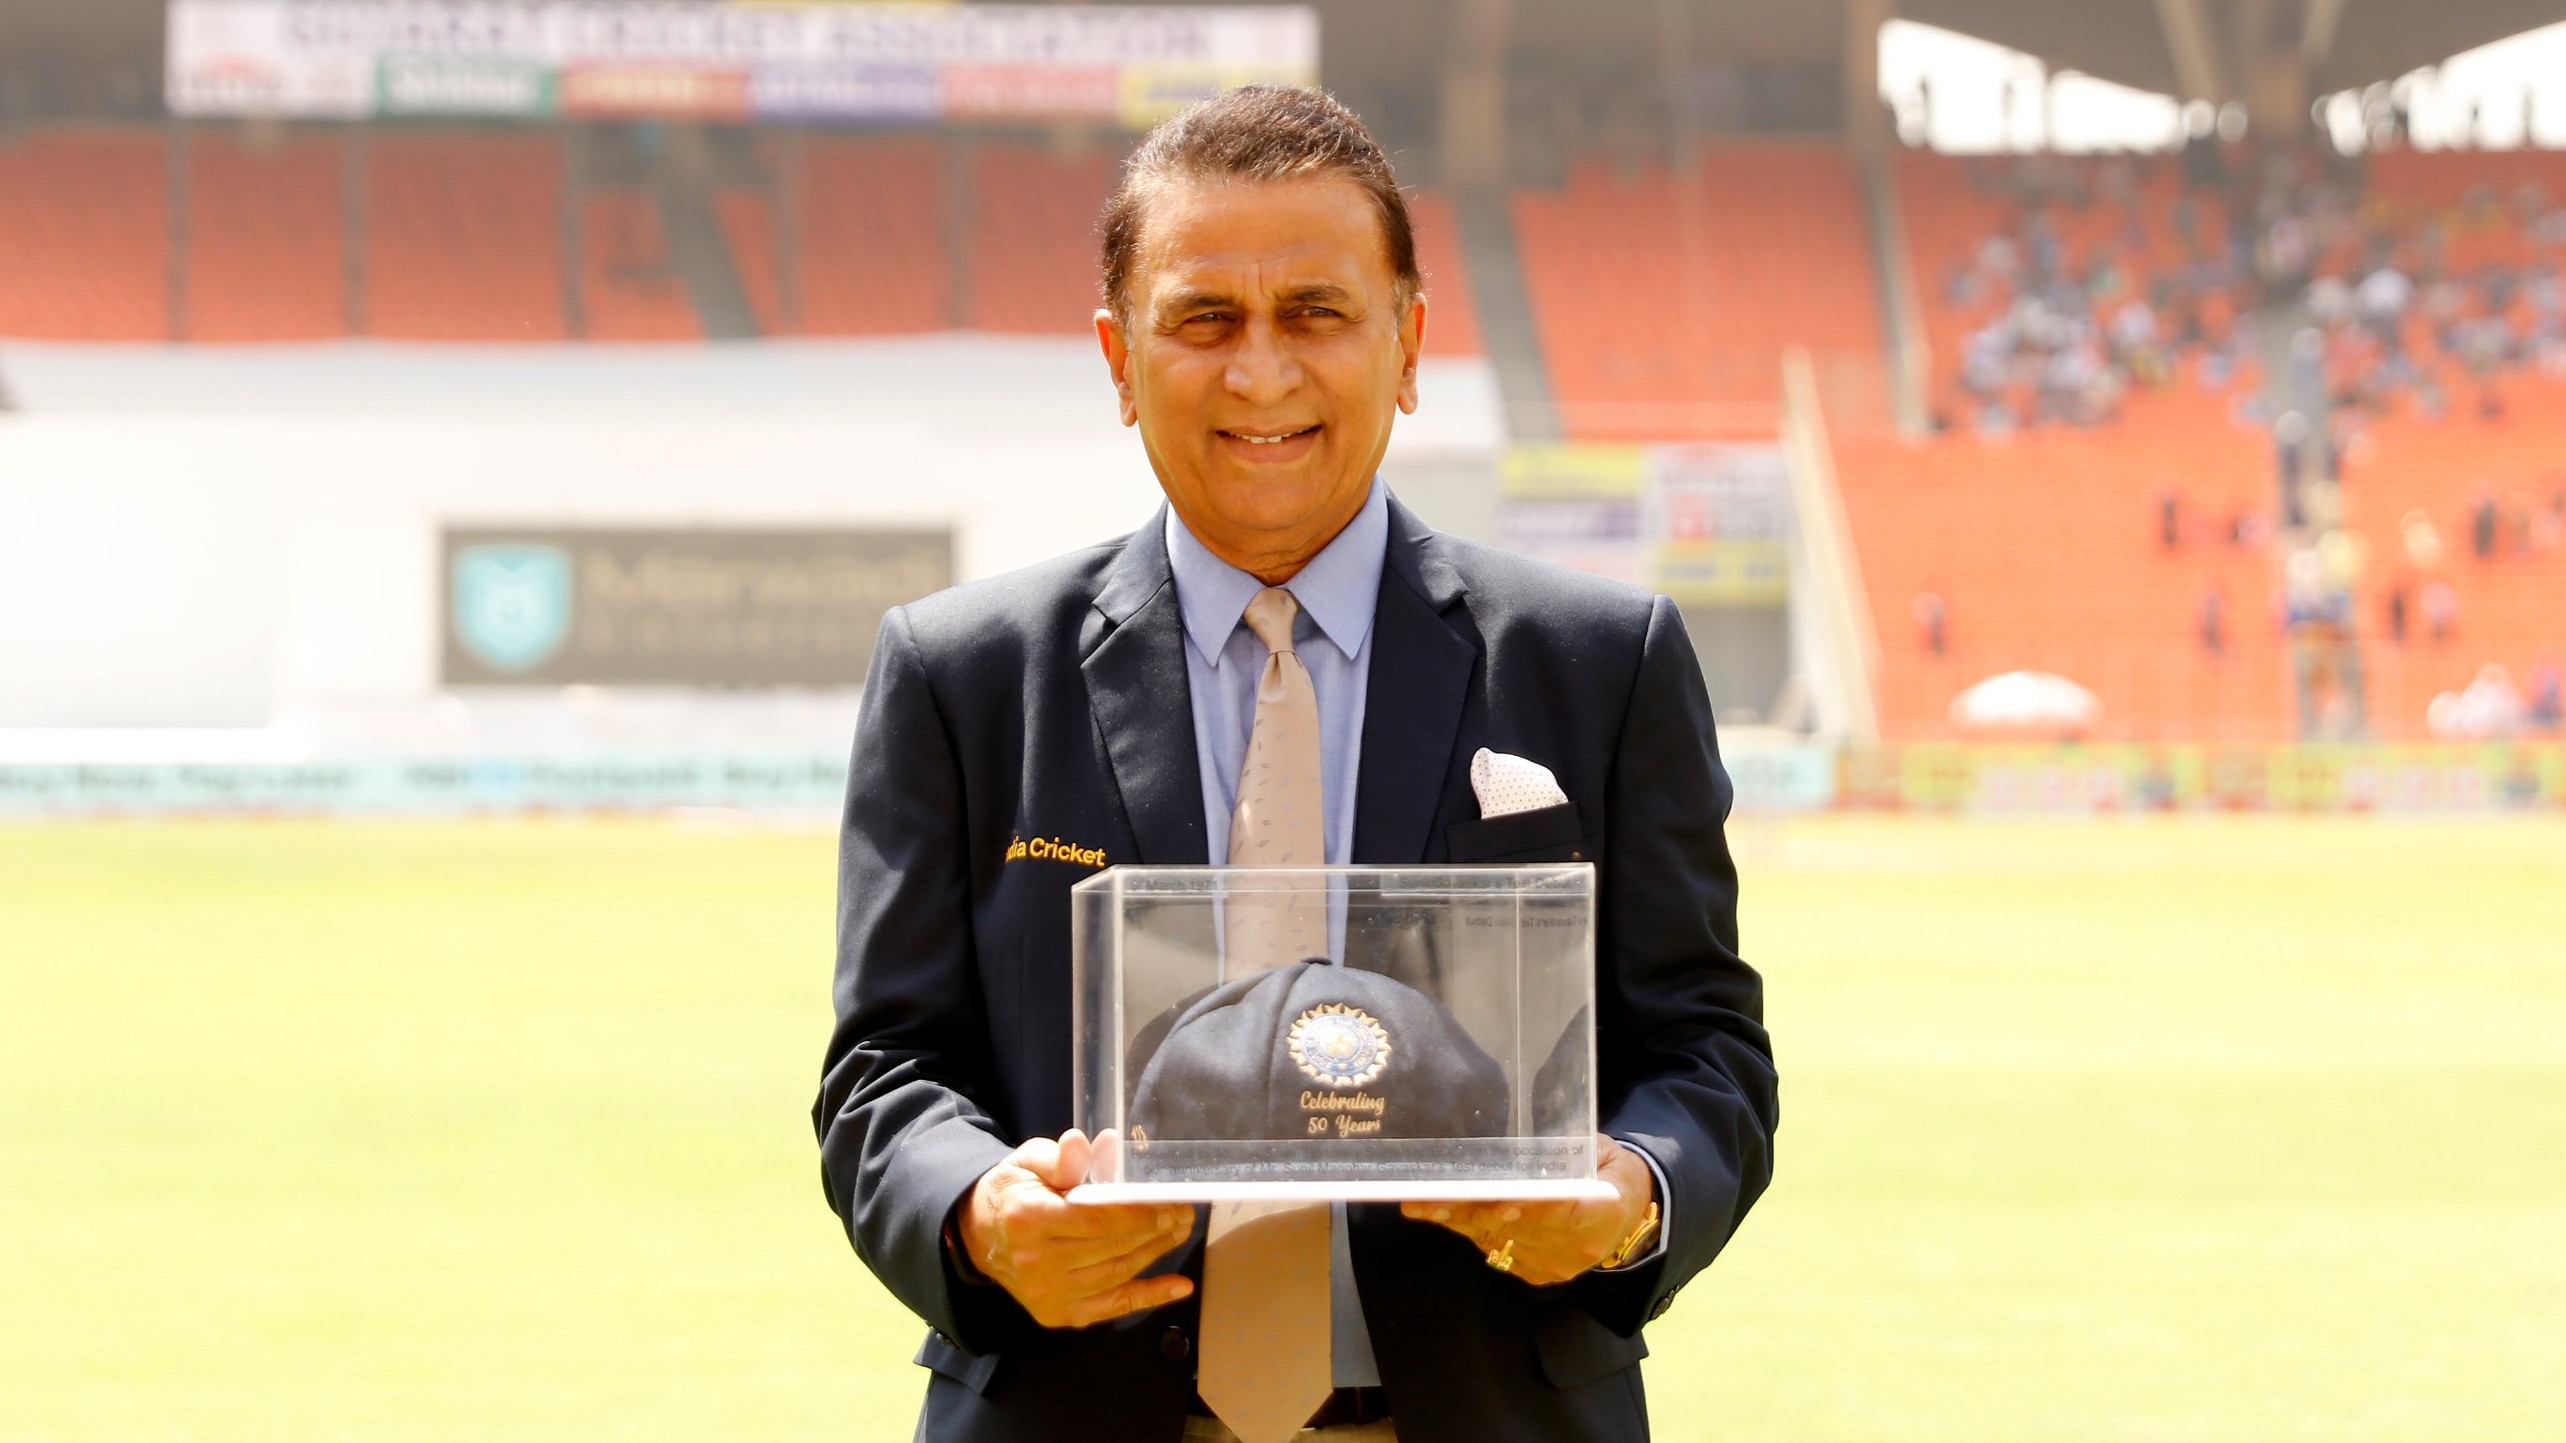 WATCH - Sunil Gavaskar felicitated by BCCI on 50th anniversary of Test debut